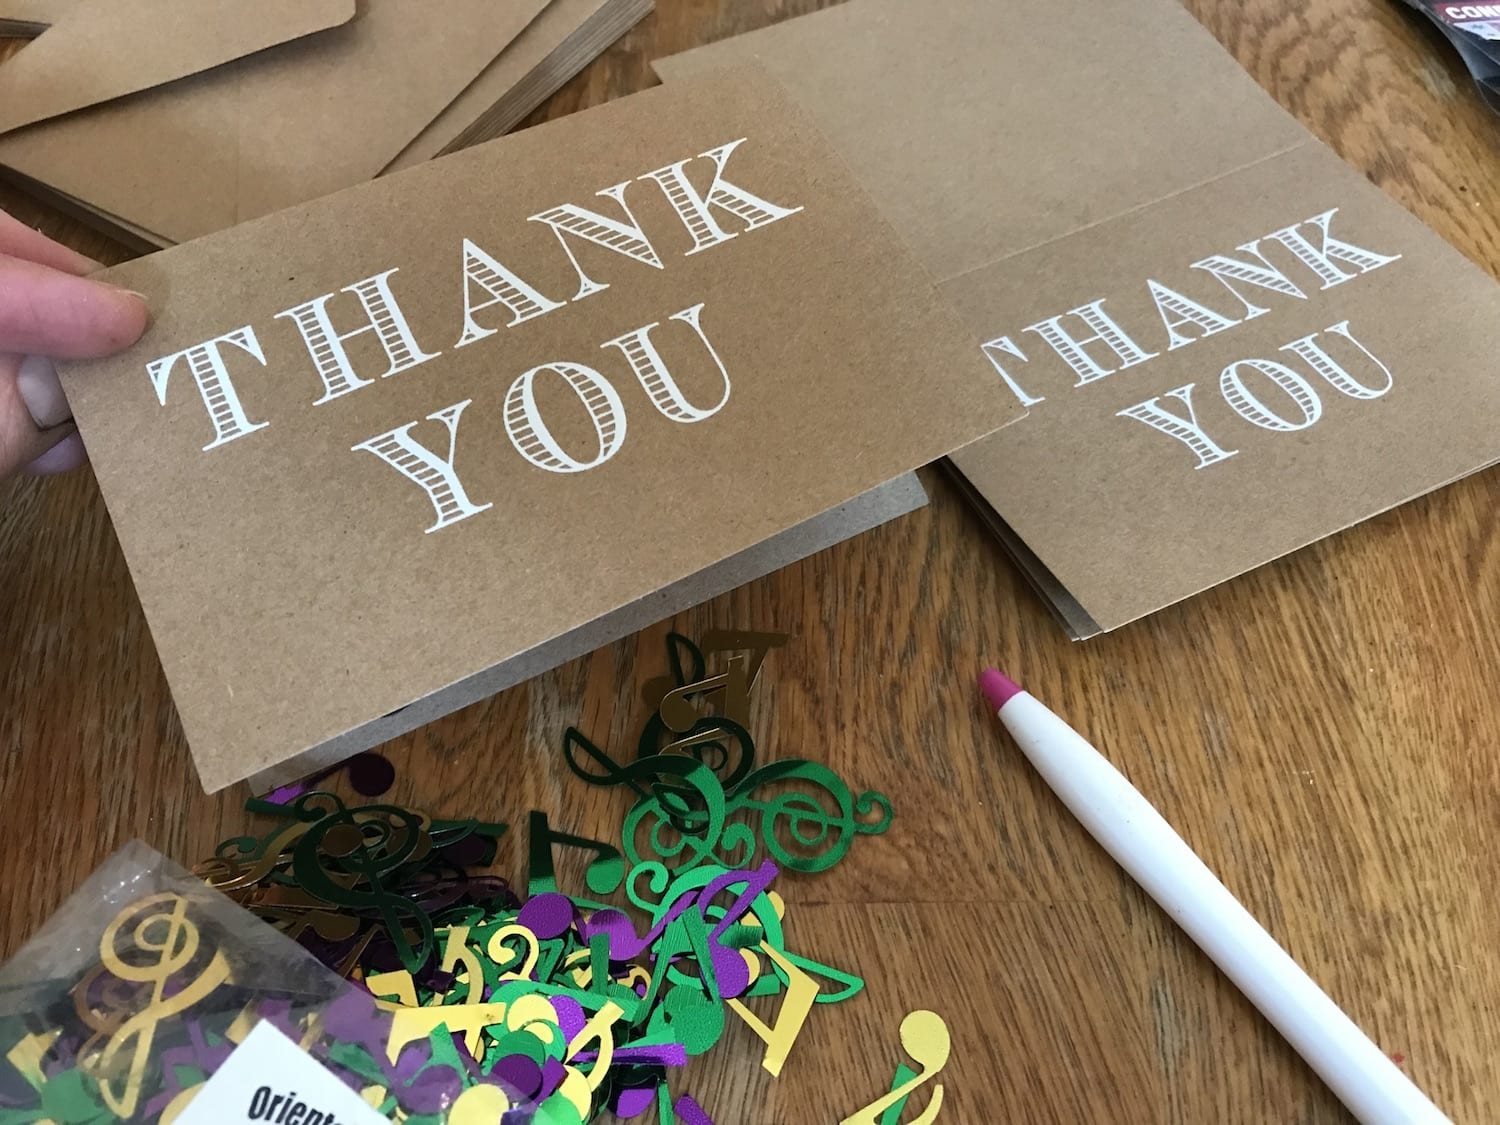 Say thanks:  Send thank you notes to friends and family